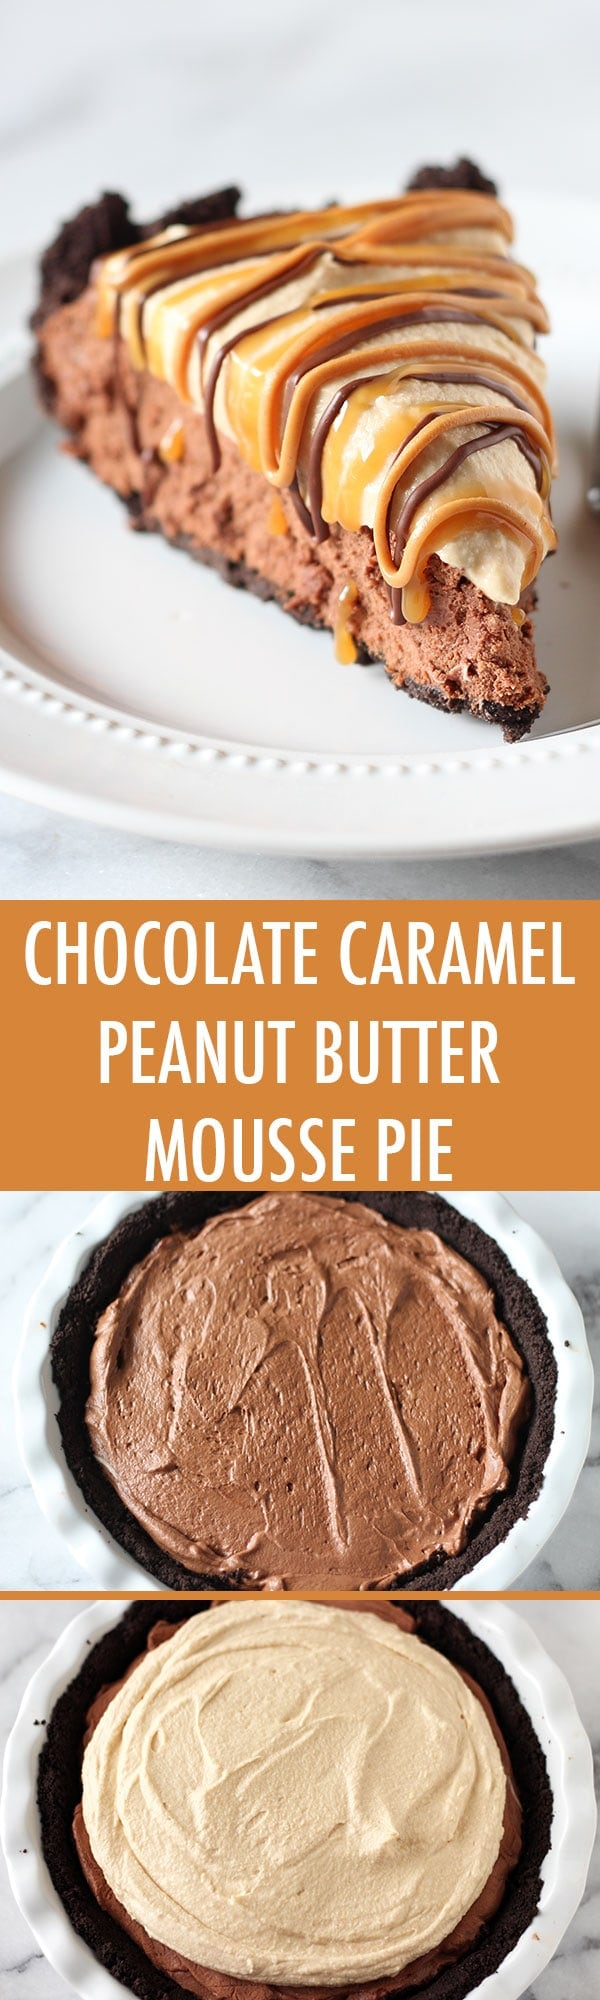 ... incredible Chocolate Peanut Butter Caramel Mousse Pie in just a sec